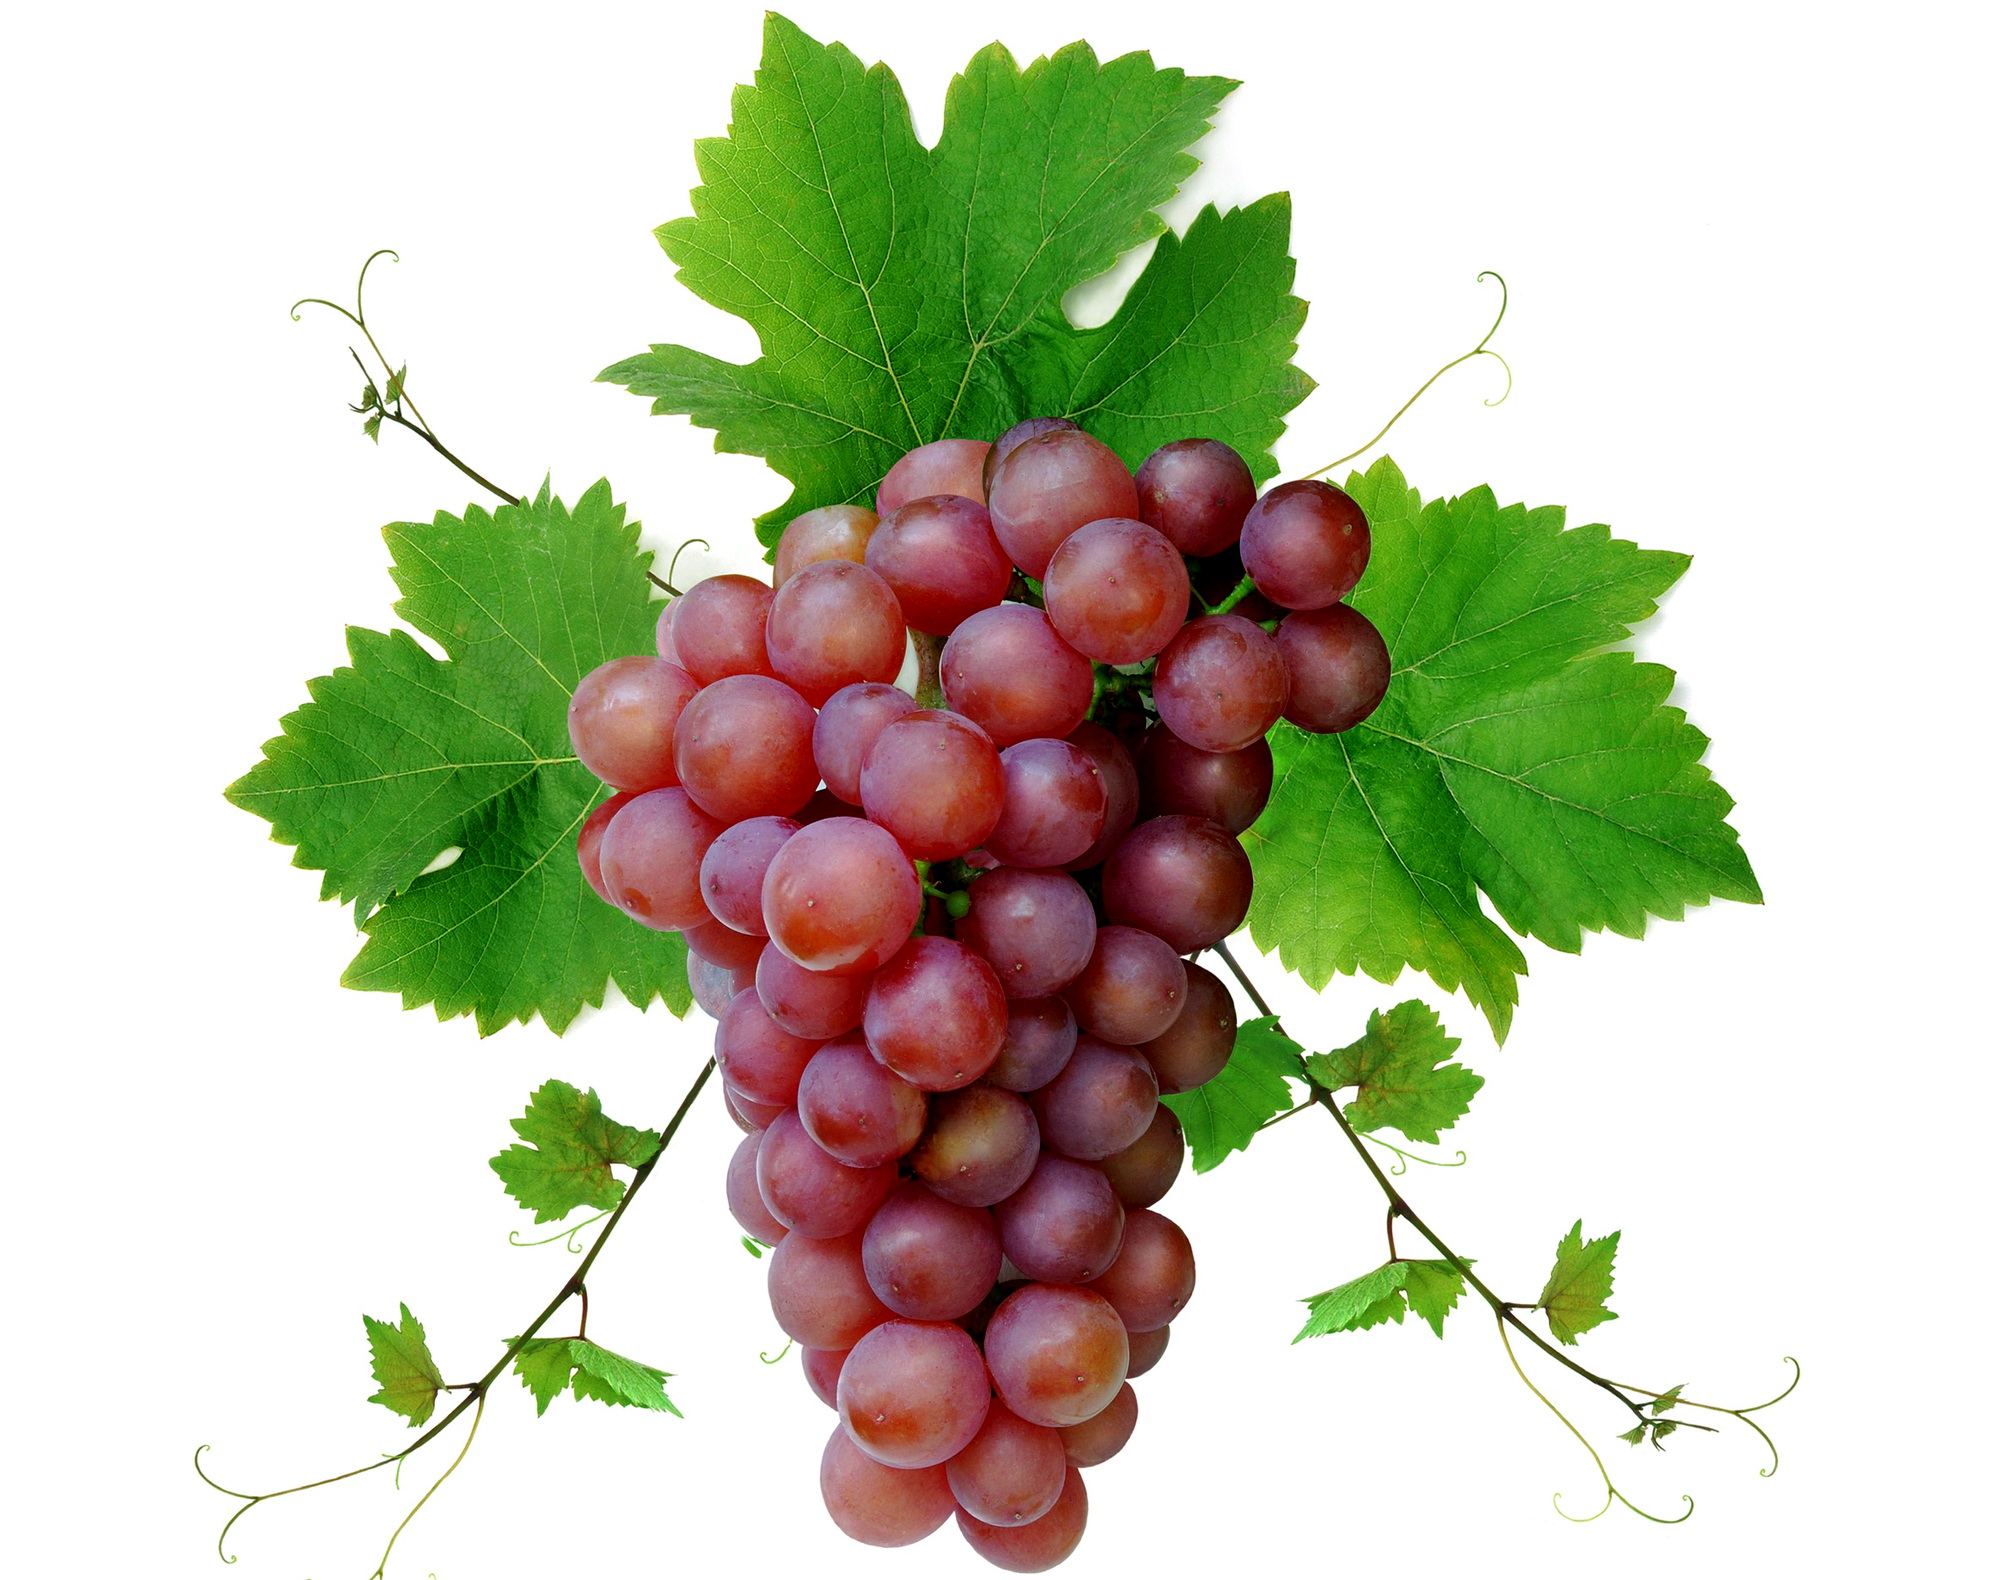 Ripe Grapes Racemation 822.8 Kb